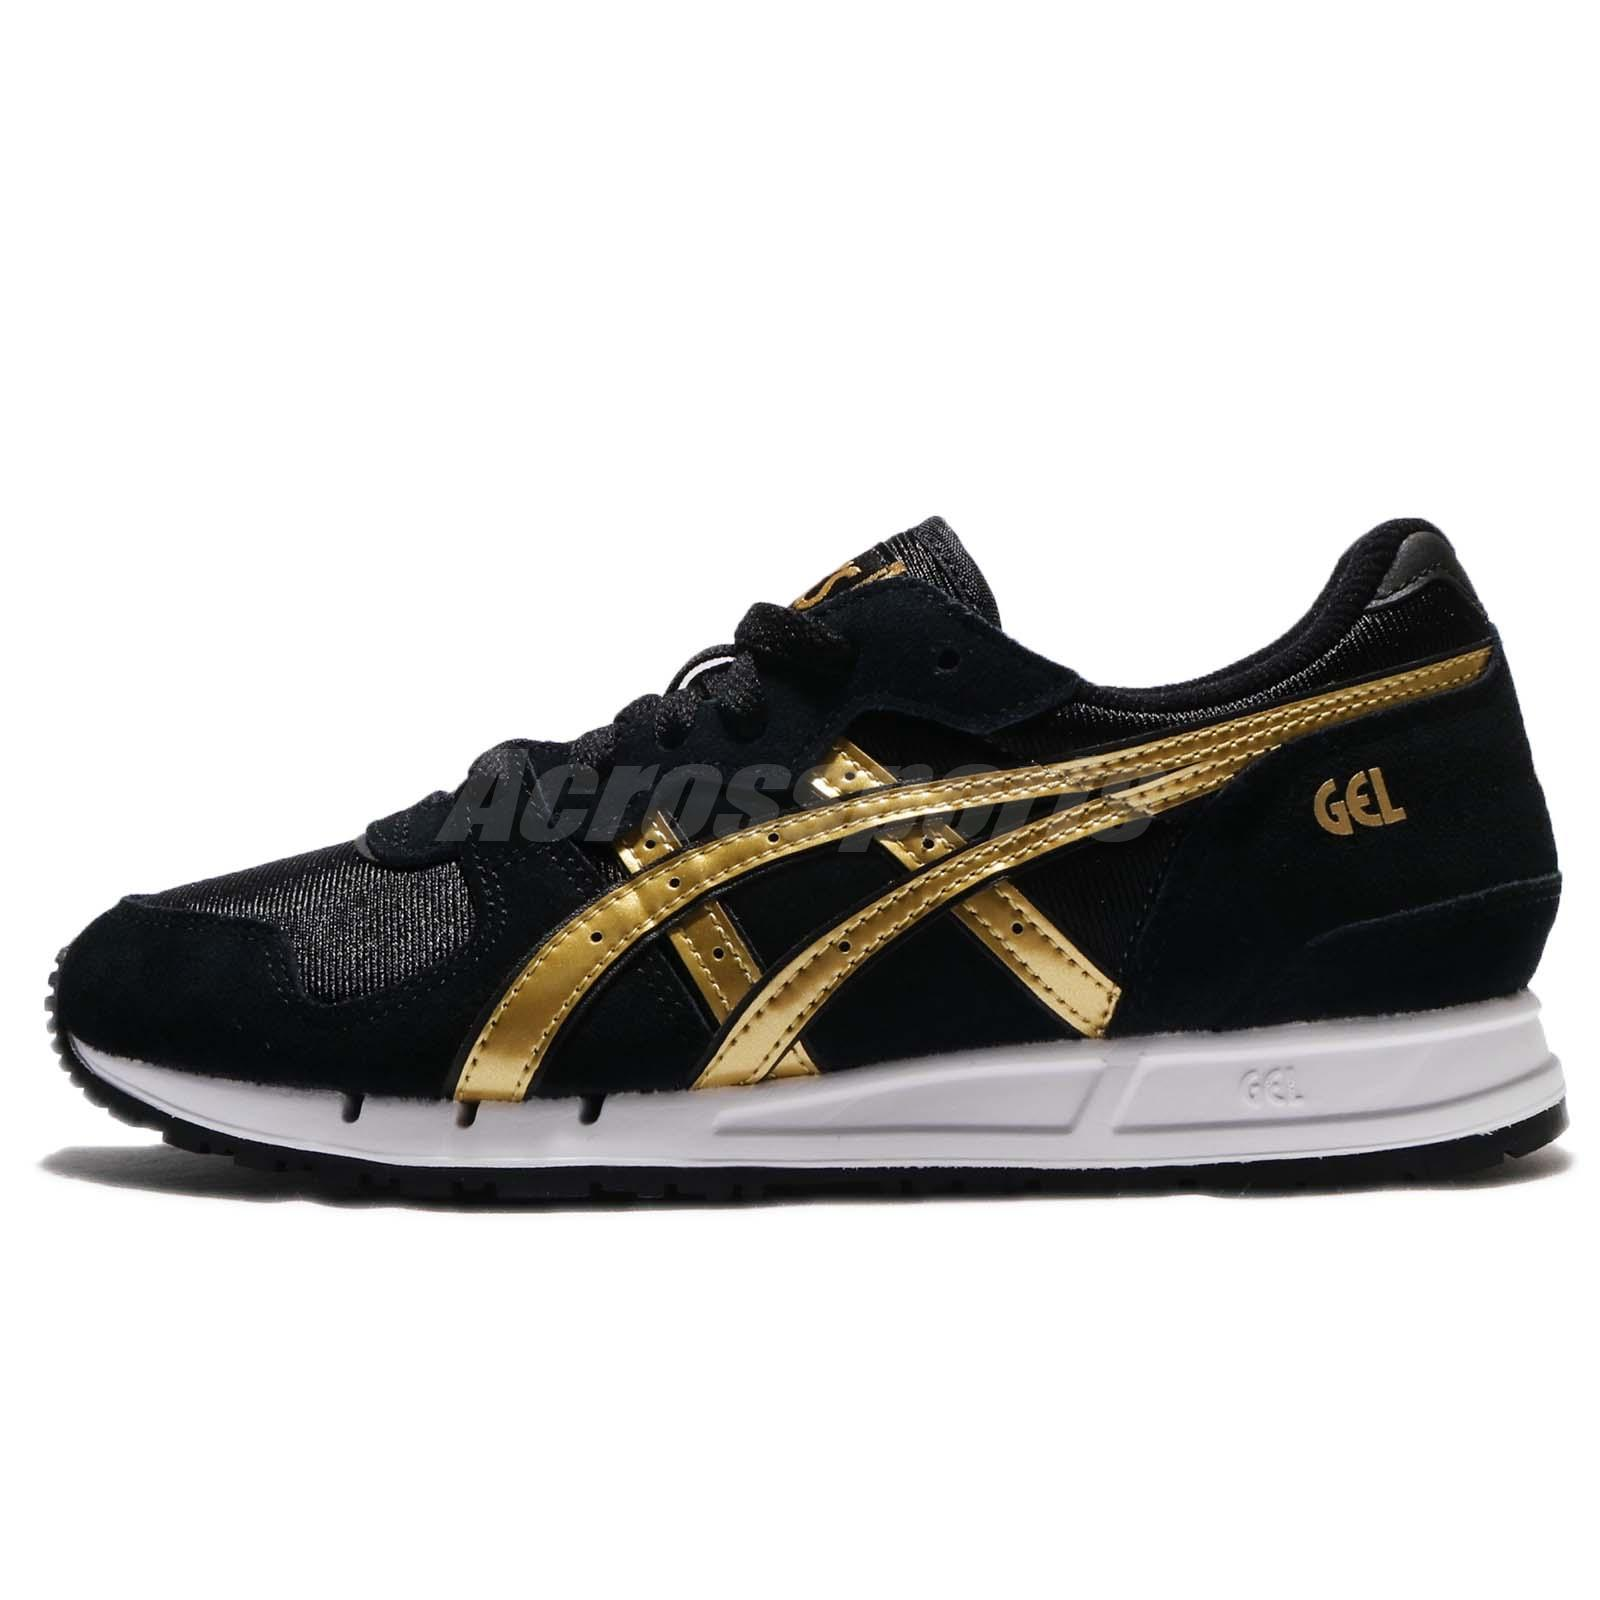 Asics Tiger Gel-Movimentum Black Gold Women Vintage Running Shoes H7X7L-9094